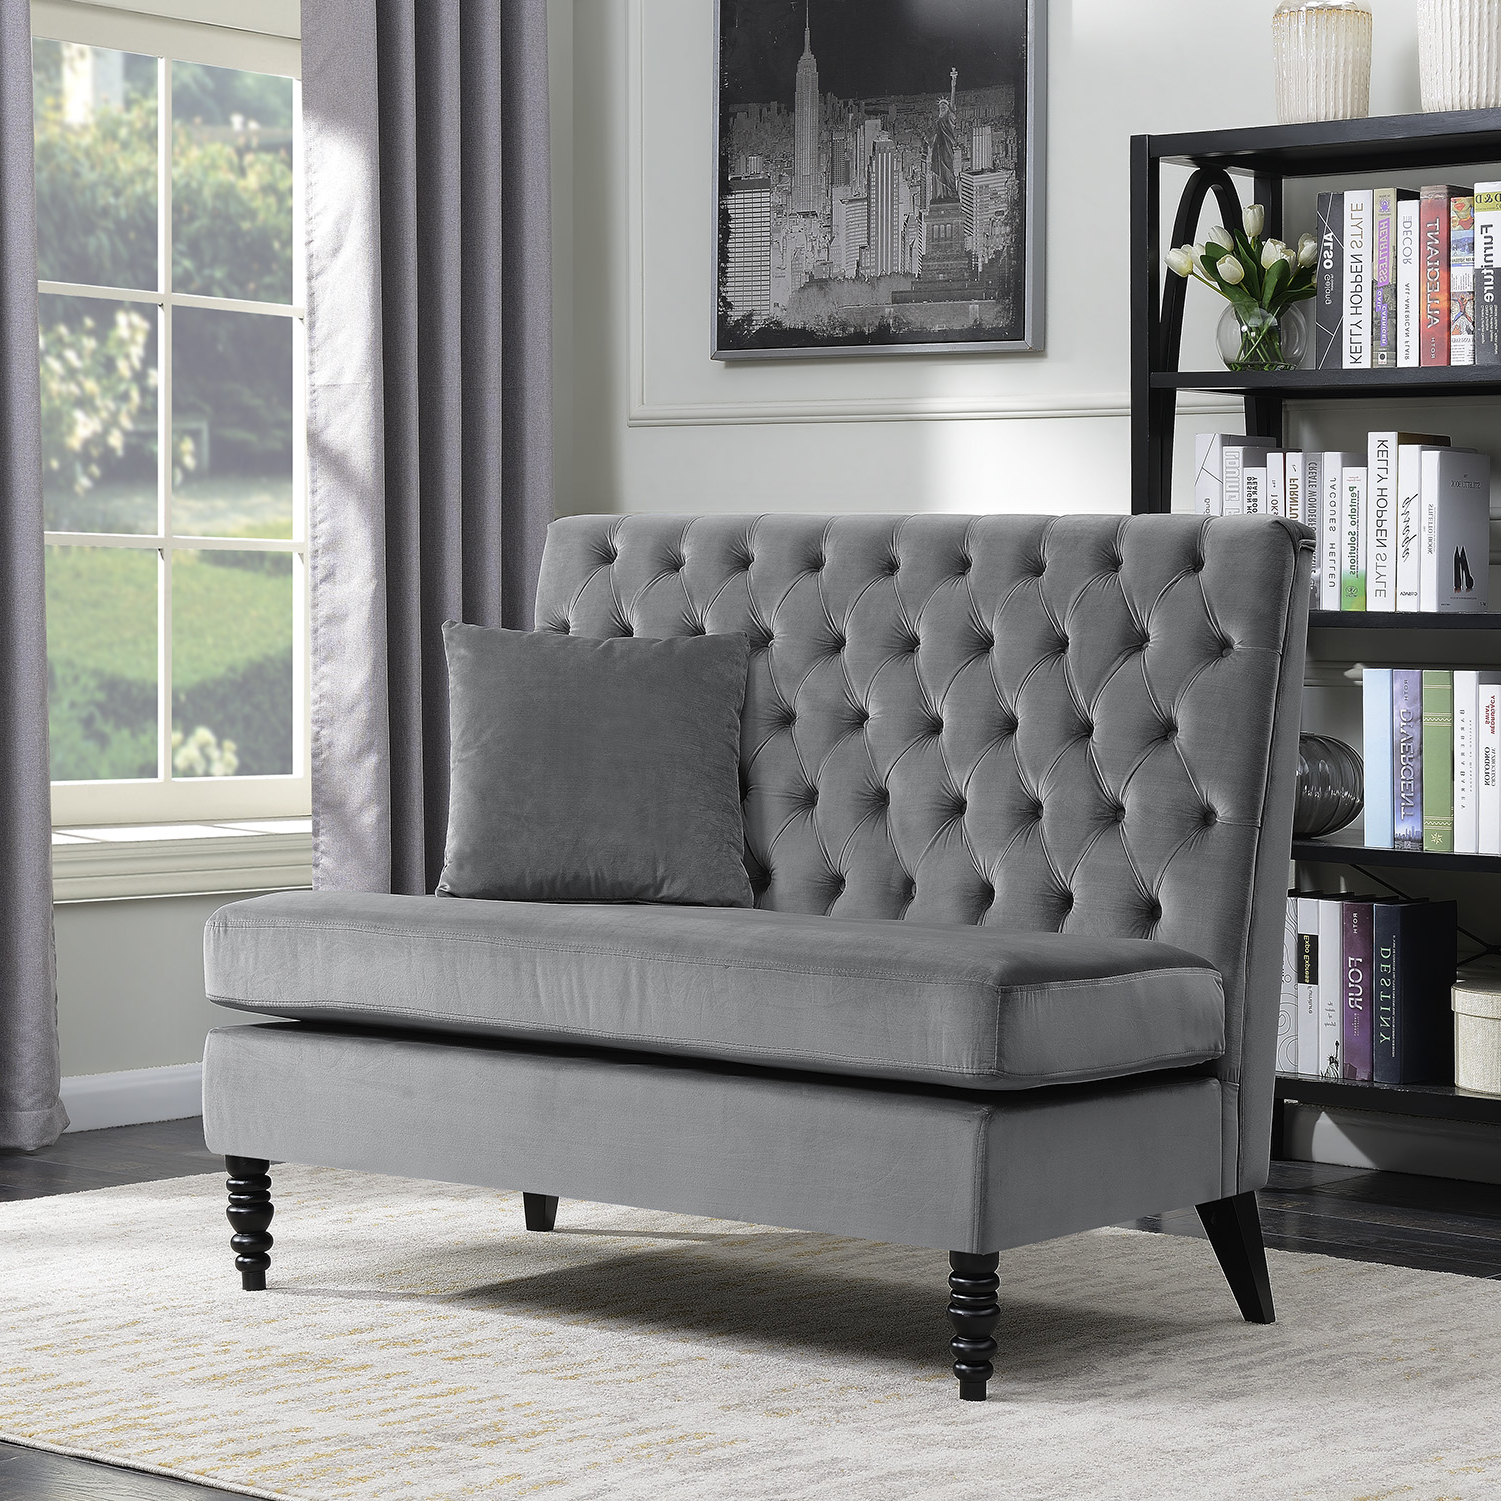 Dayse Contemporary Loveseats With Cushion Pertaining To Popular Details About New Modern Tufted Settee Bedroom Bench Sofa High Back Cushion Seat Fabric Velvet (View 14 of 25)